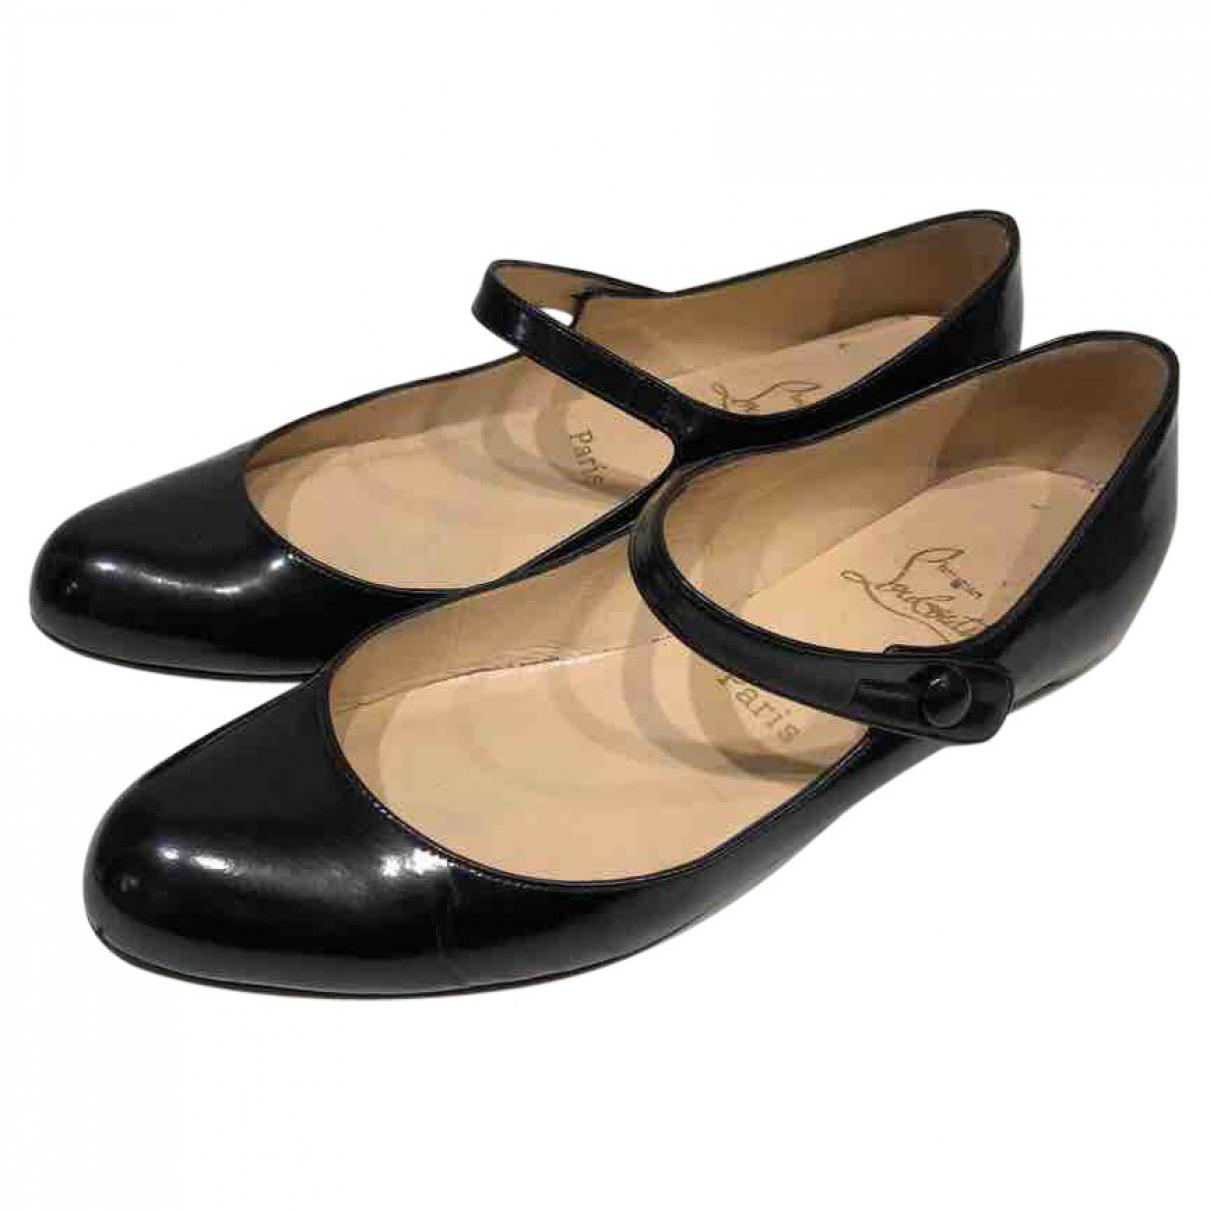 c066bfc26777 Lyst - Christian Louboutin Patent Leather Ballet Flats in Black